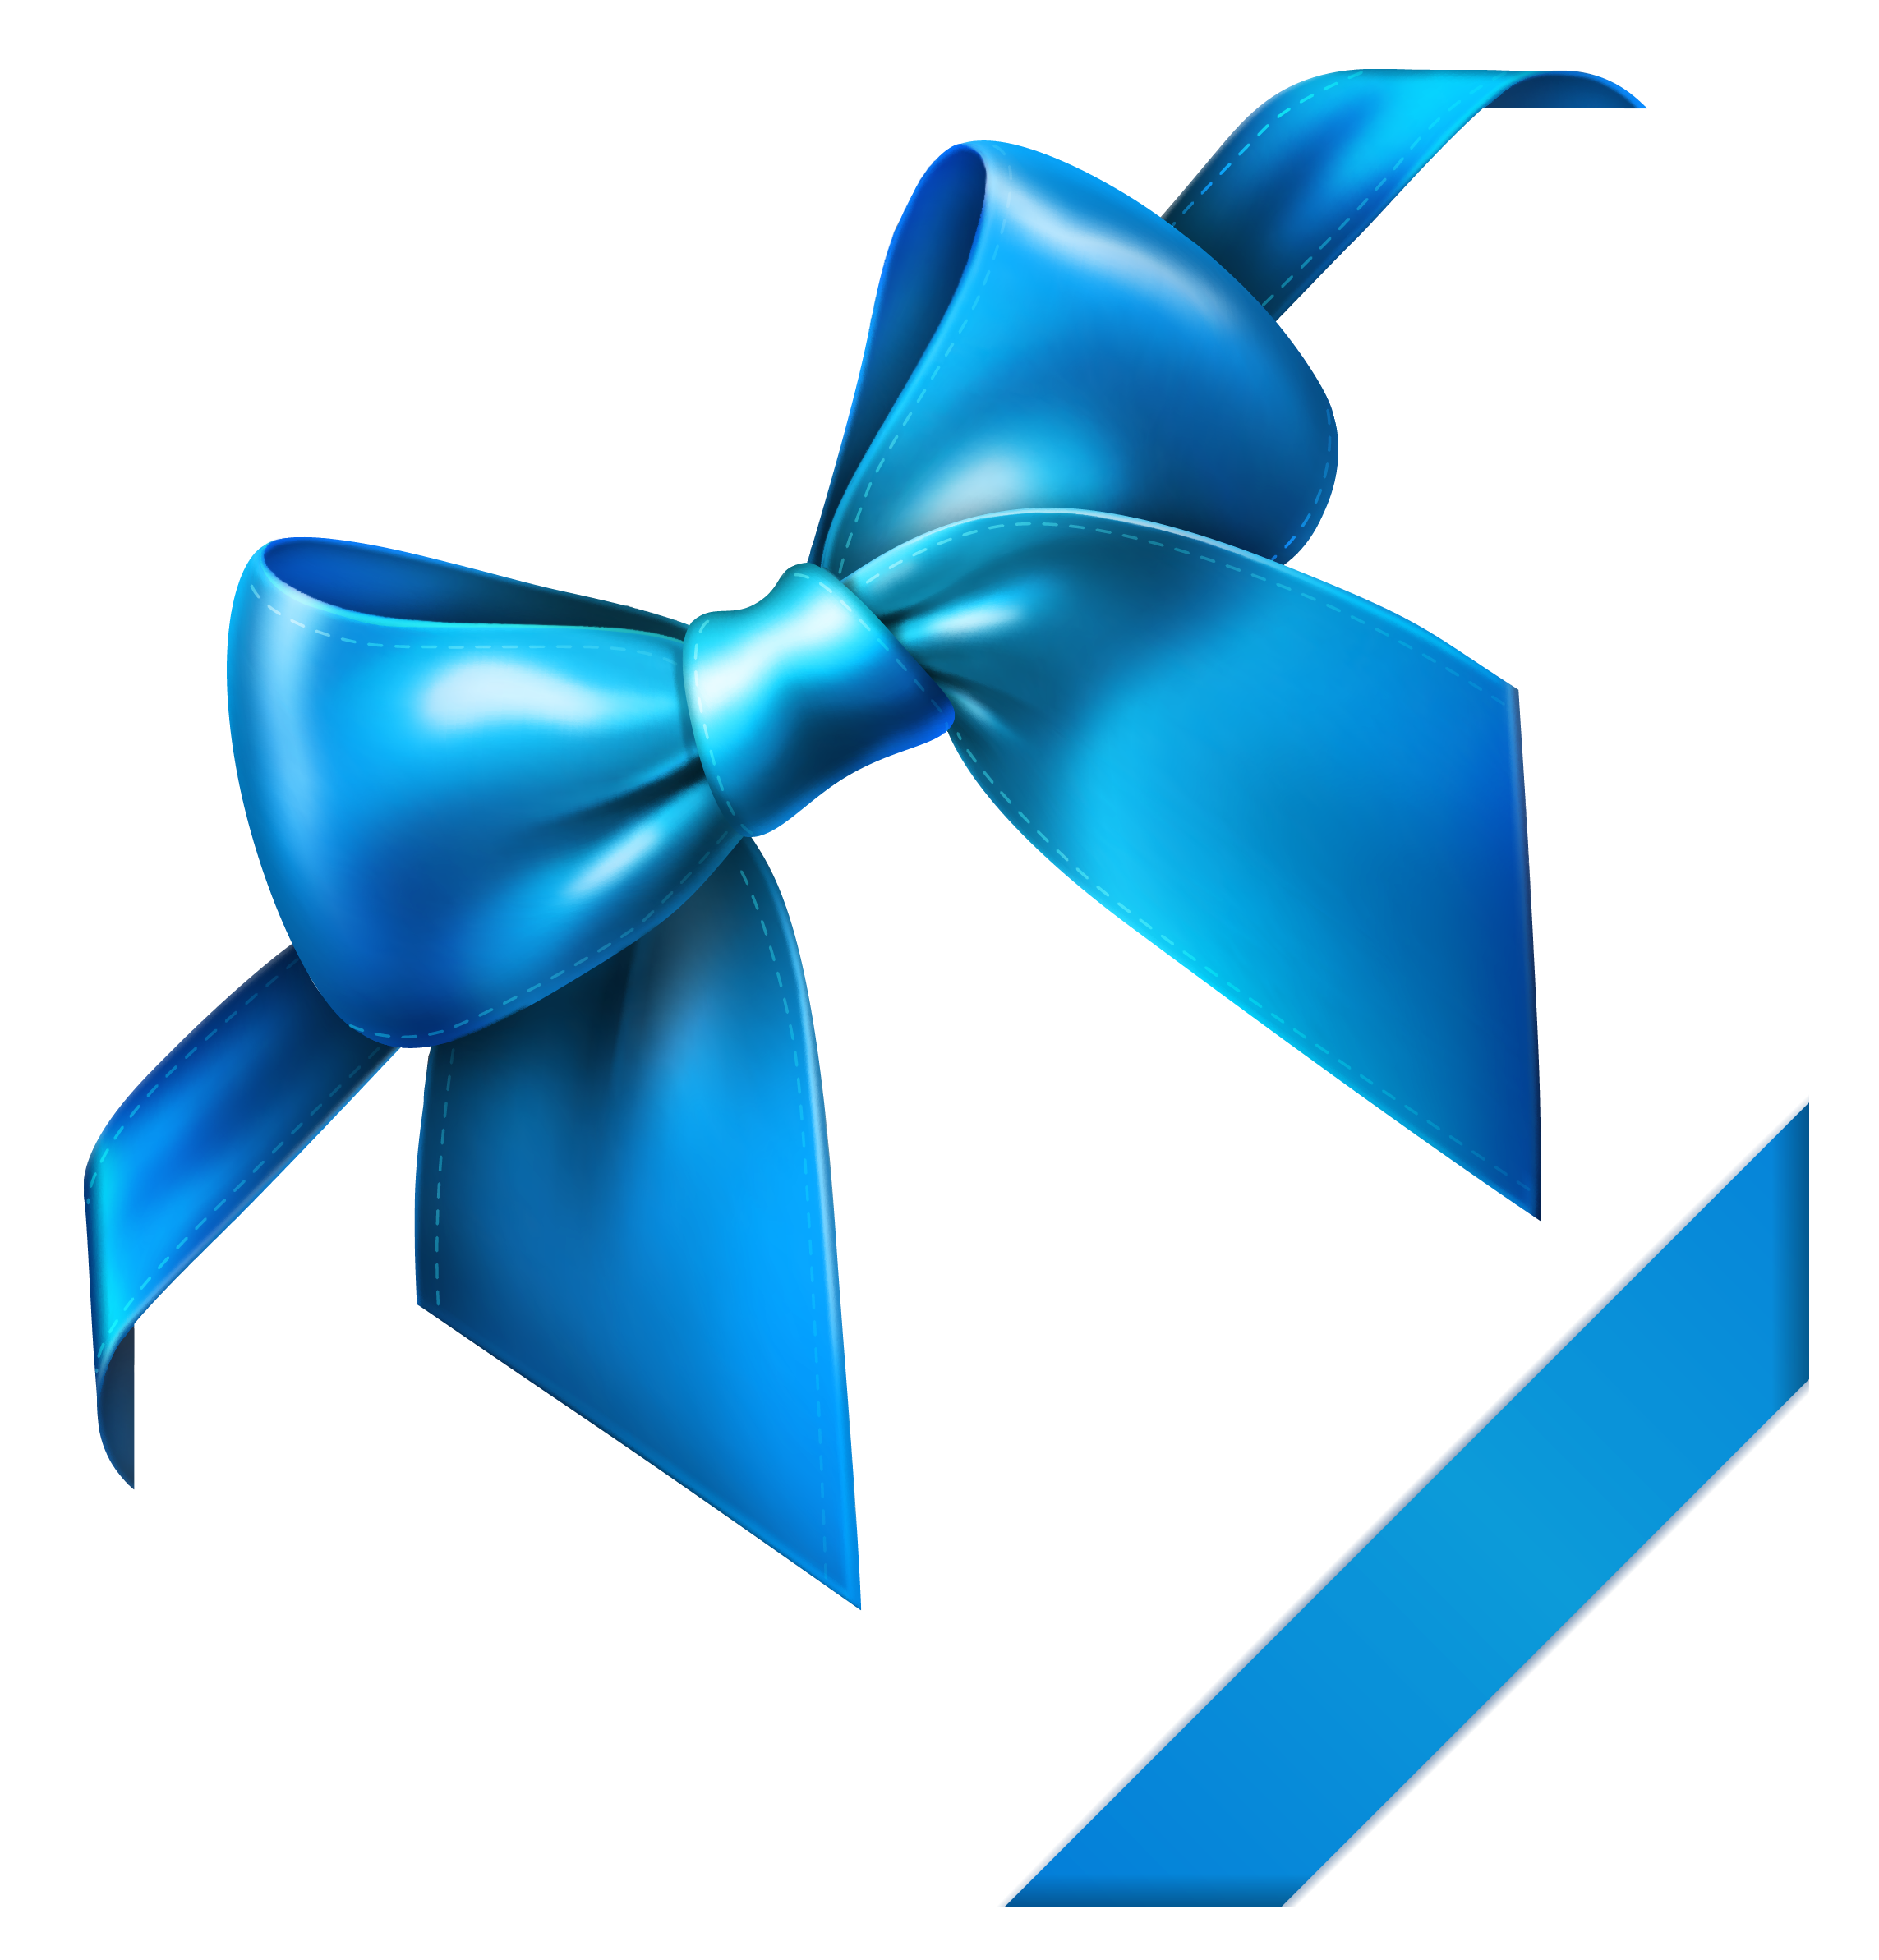 clip art download Bows clipart baseball. Blue bow png picture.